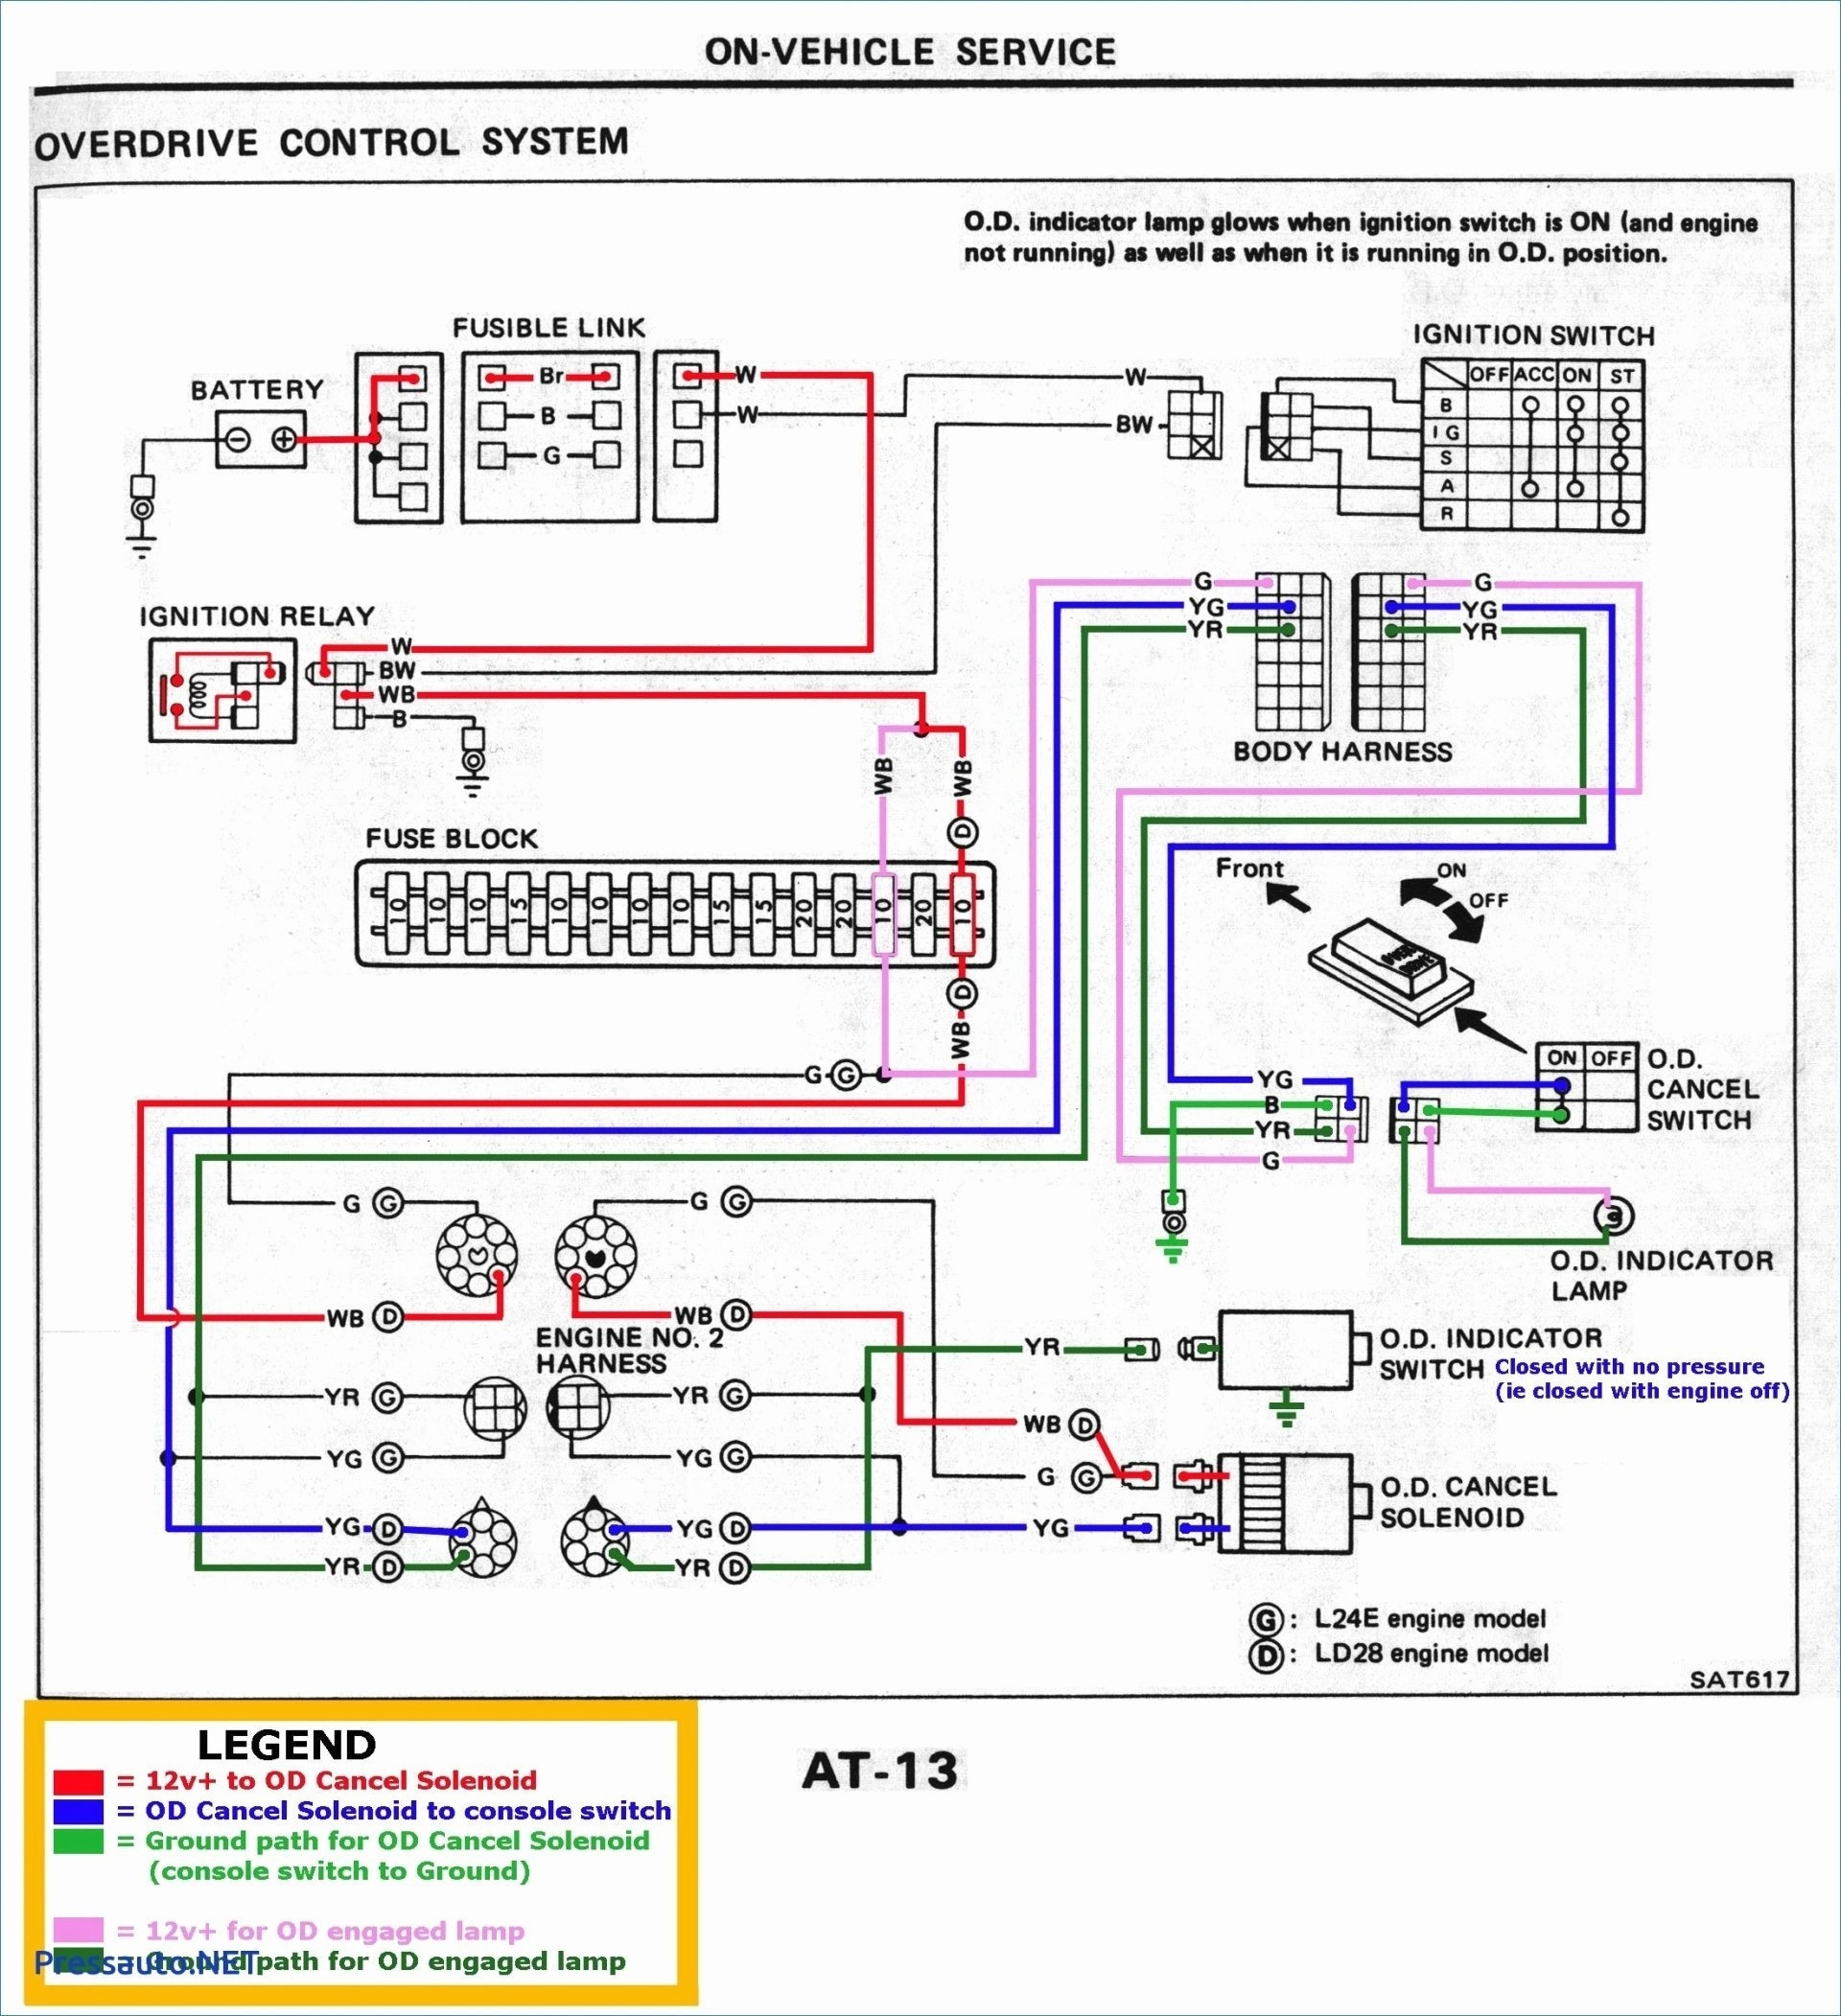 Denso Alternator Wiring Harness Wiring Diagram Bots Denso Alternator Wiring  Diagram Nippondenso Alternator Wiring Diagram